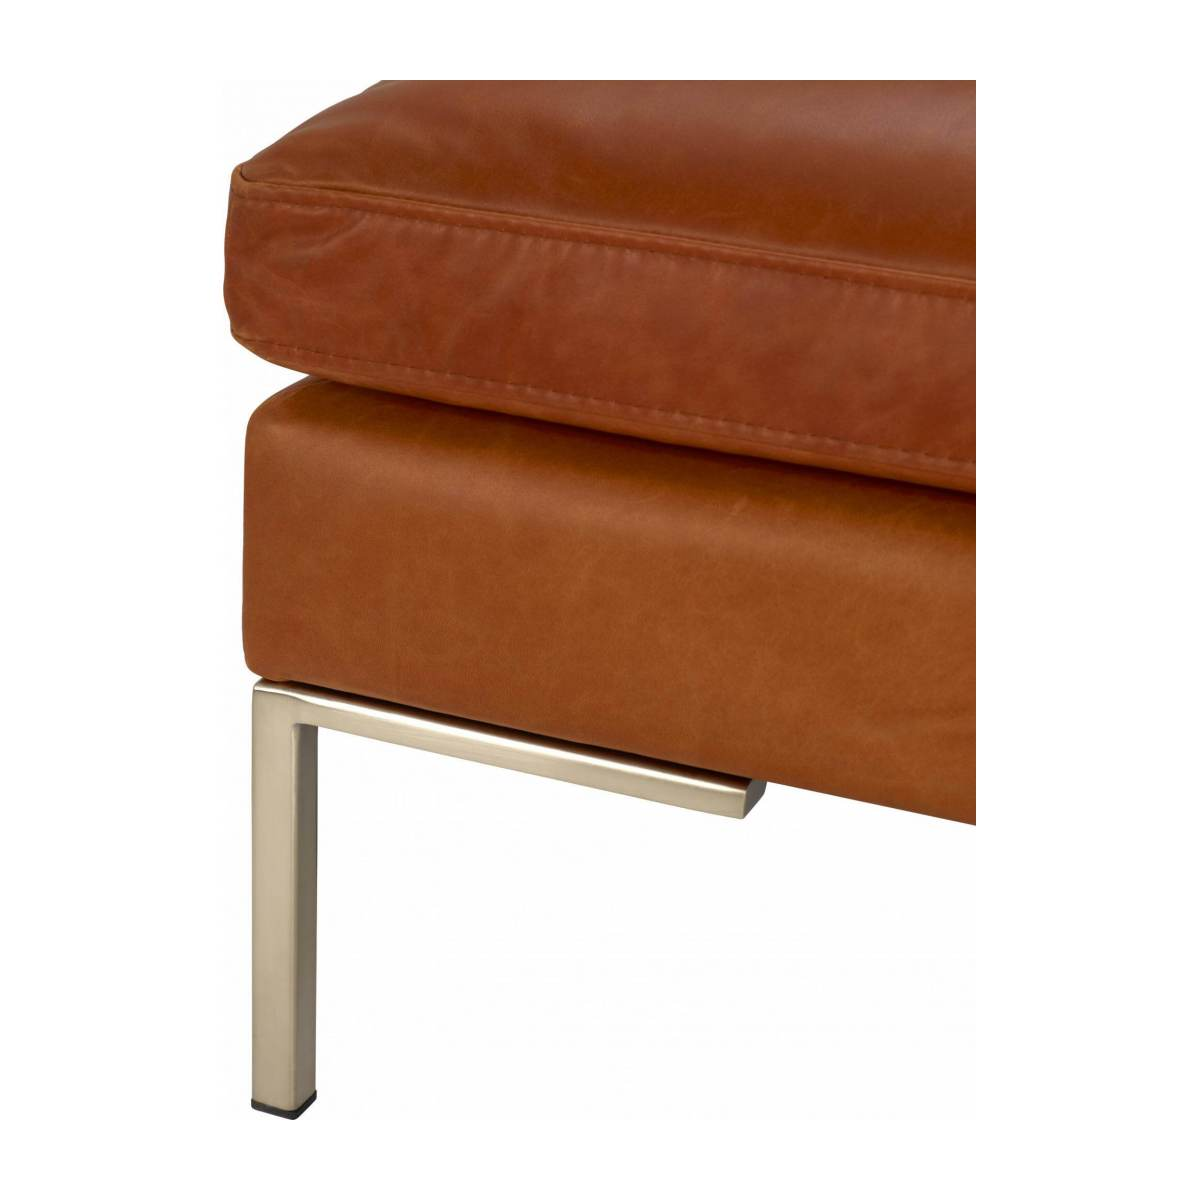 Footstool in Vintage aniline leather, old chestnut n°5